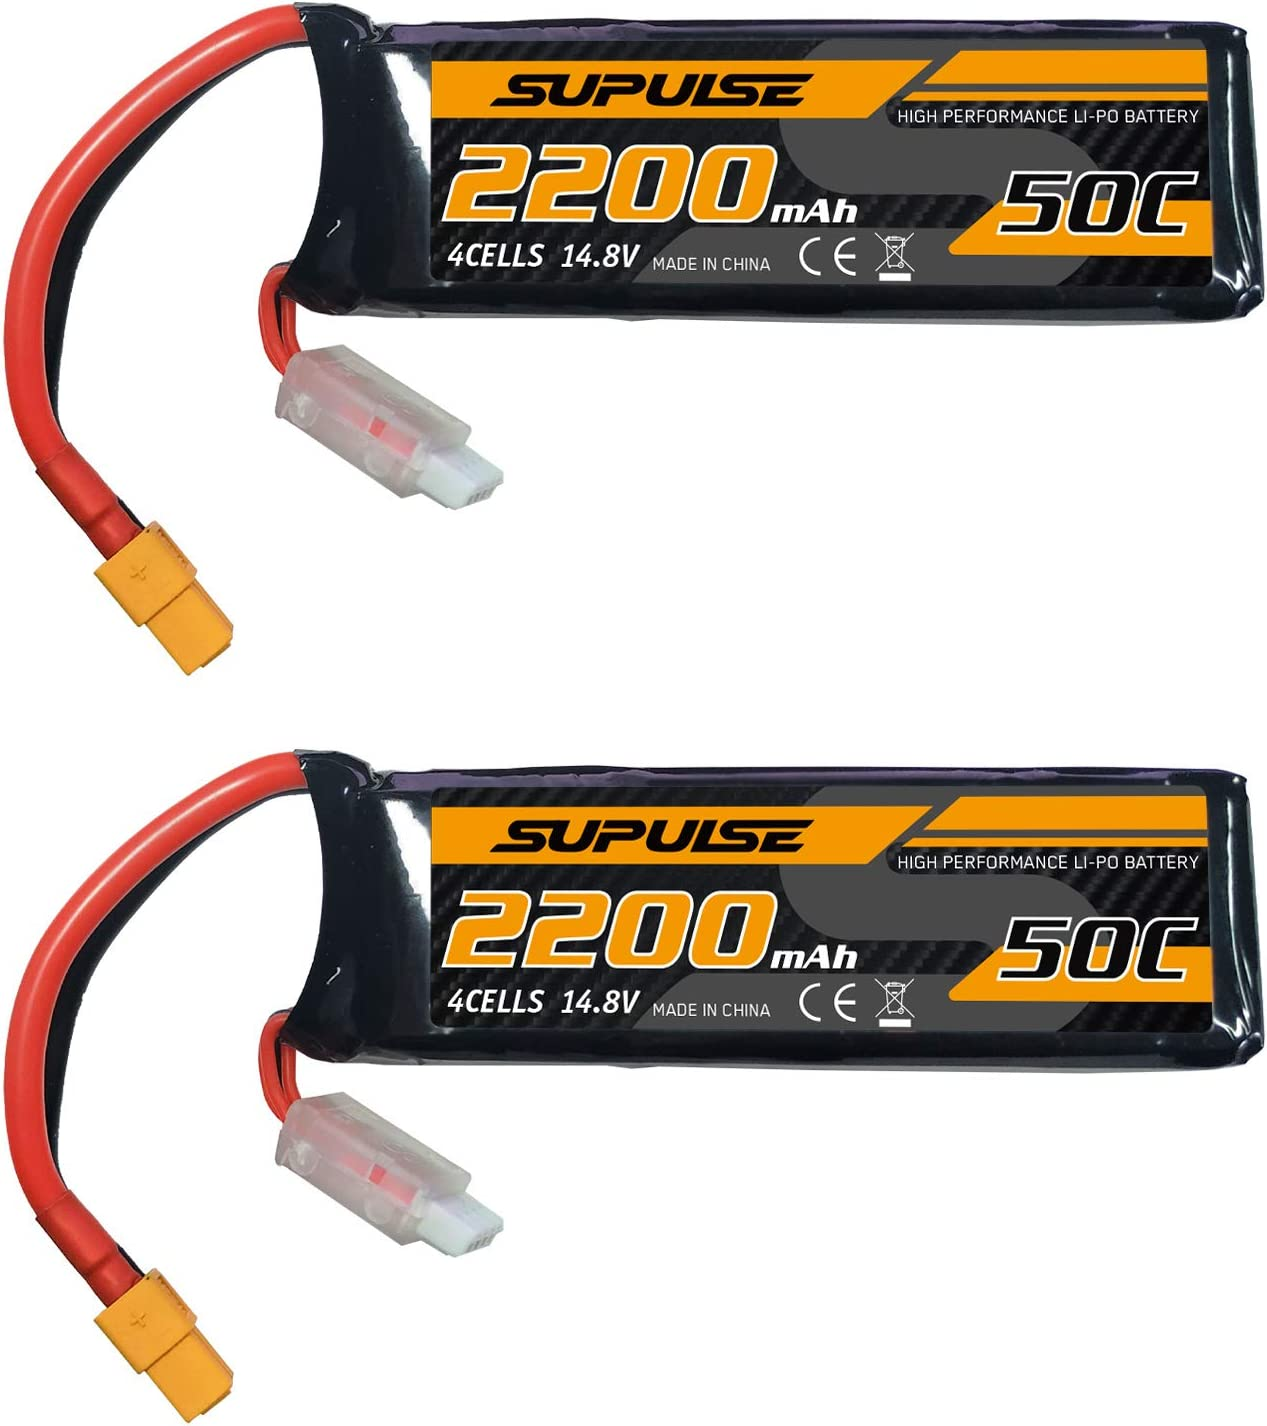 SUPULSE 2pcs Clearance SALE! Limited time! 14.8V 4S 2200mAh 50C with Battery XT60 Lipo fo Plug Over item handling